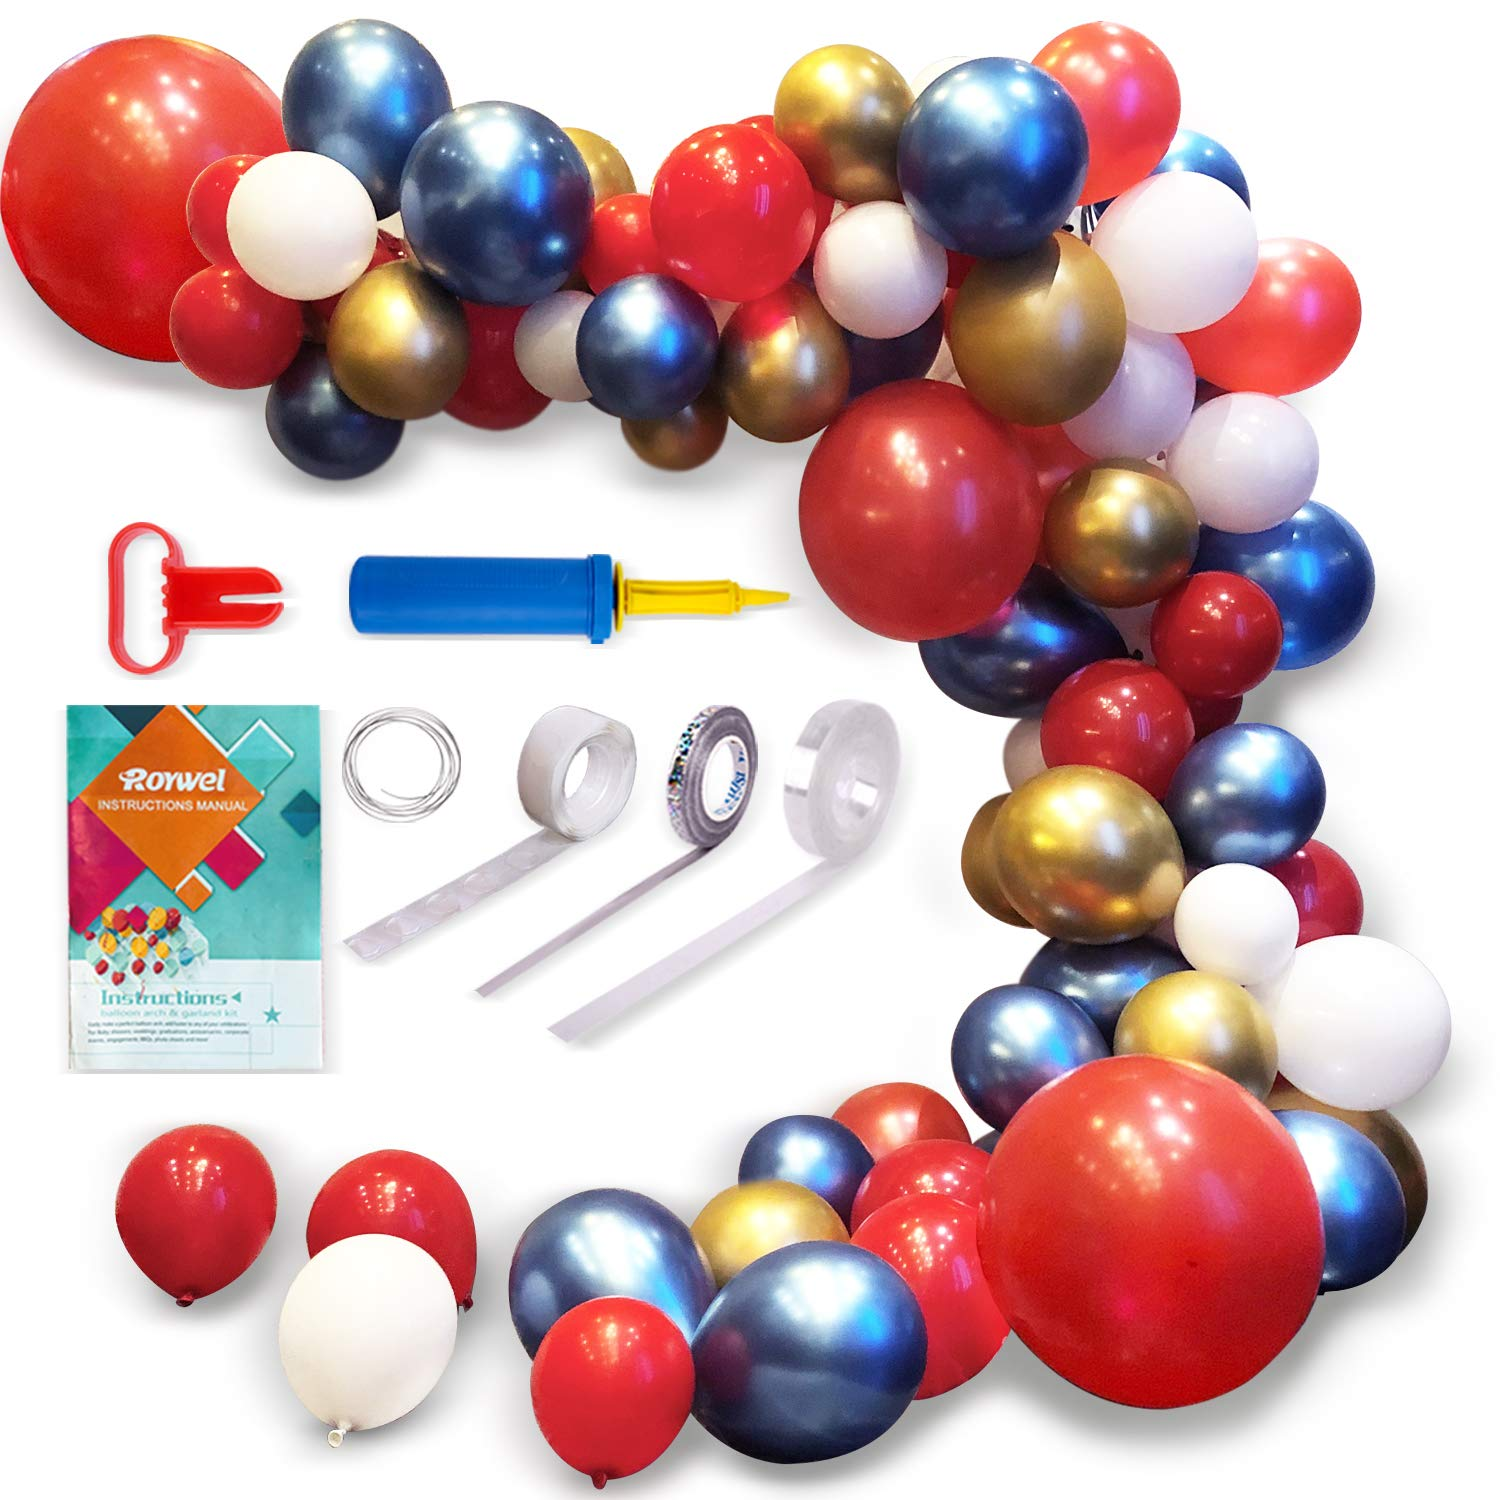 Balloons for Parties,Garland Latex Balloon Arch Ganland Kit 95 Pieces | Red | Blue | Gold | White Balloons for Baby Showers, Weddings, Graduations, Corporate Events, Engagements